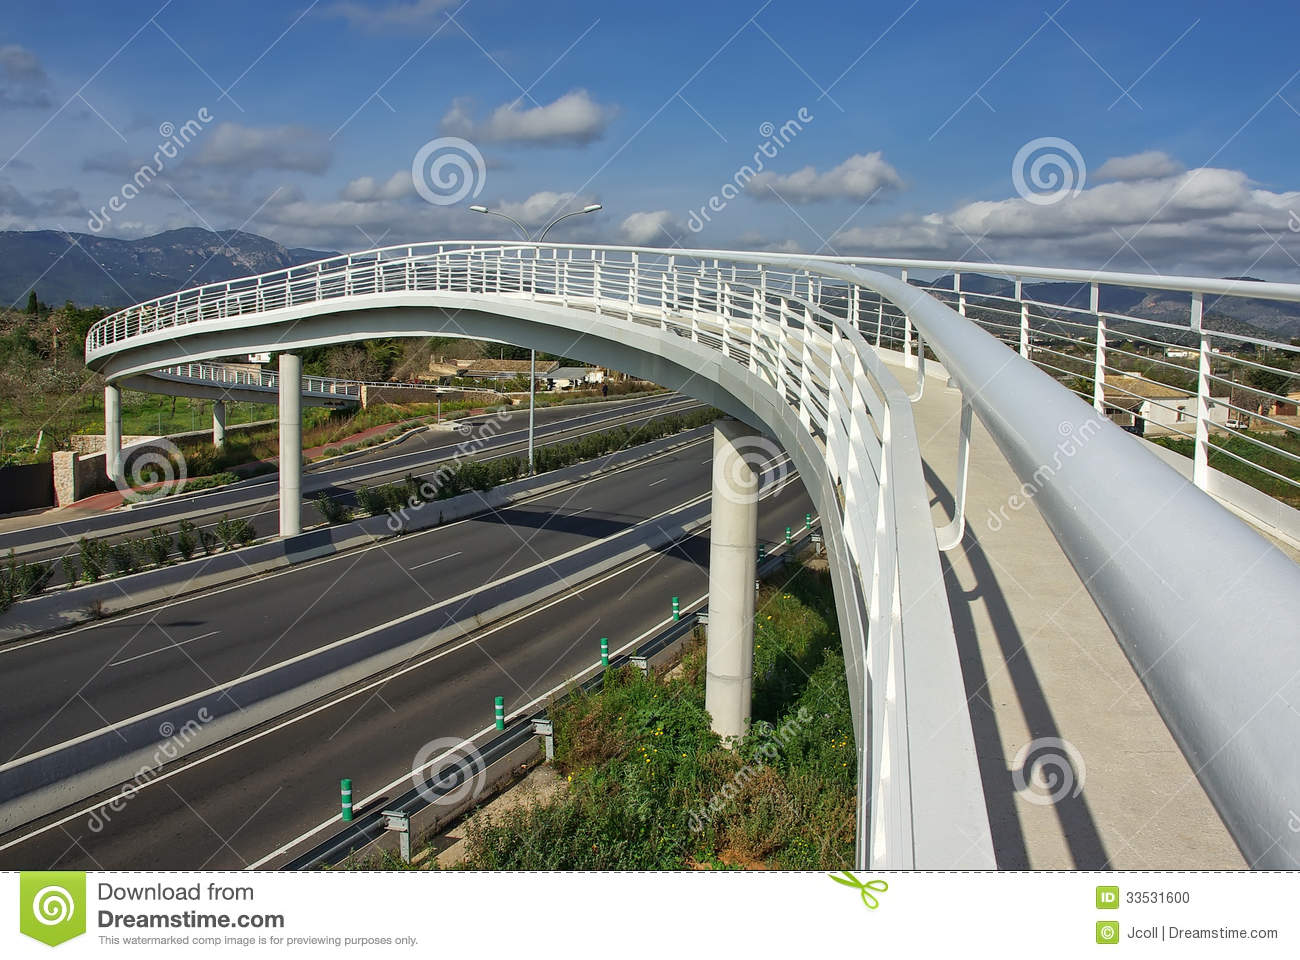 White pedestrian bridge over a highway in Majorca (Spain).